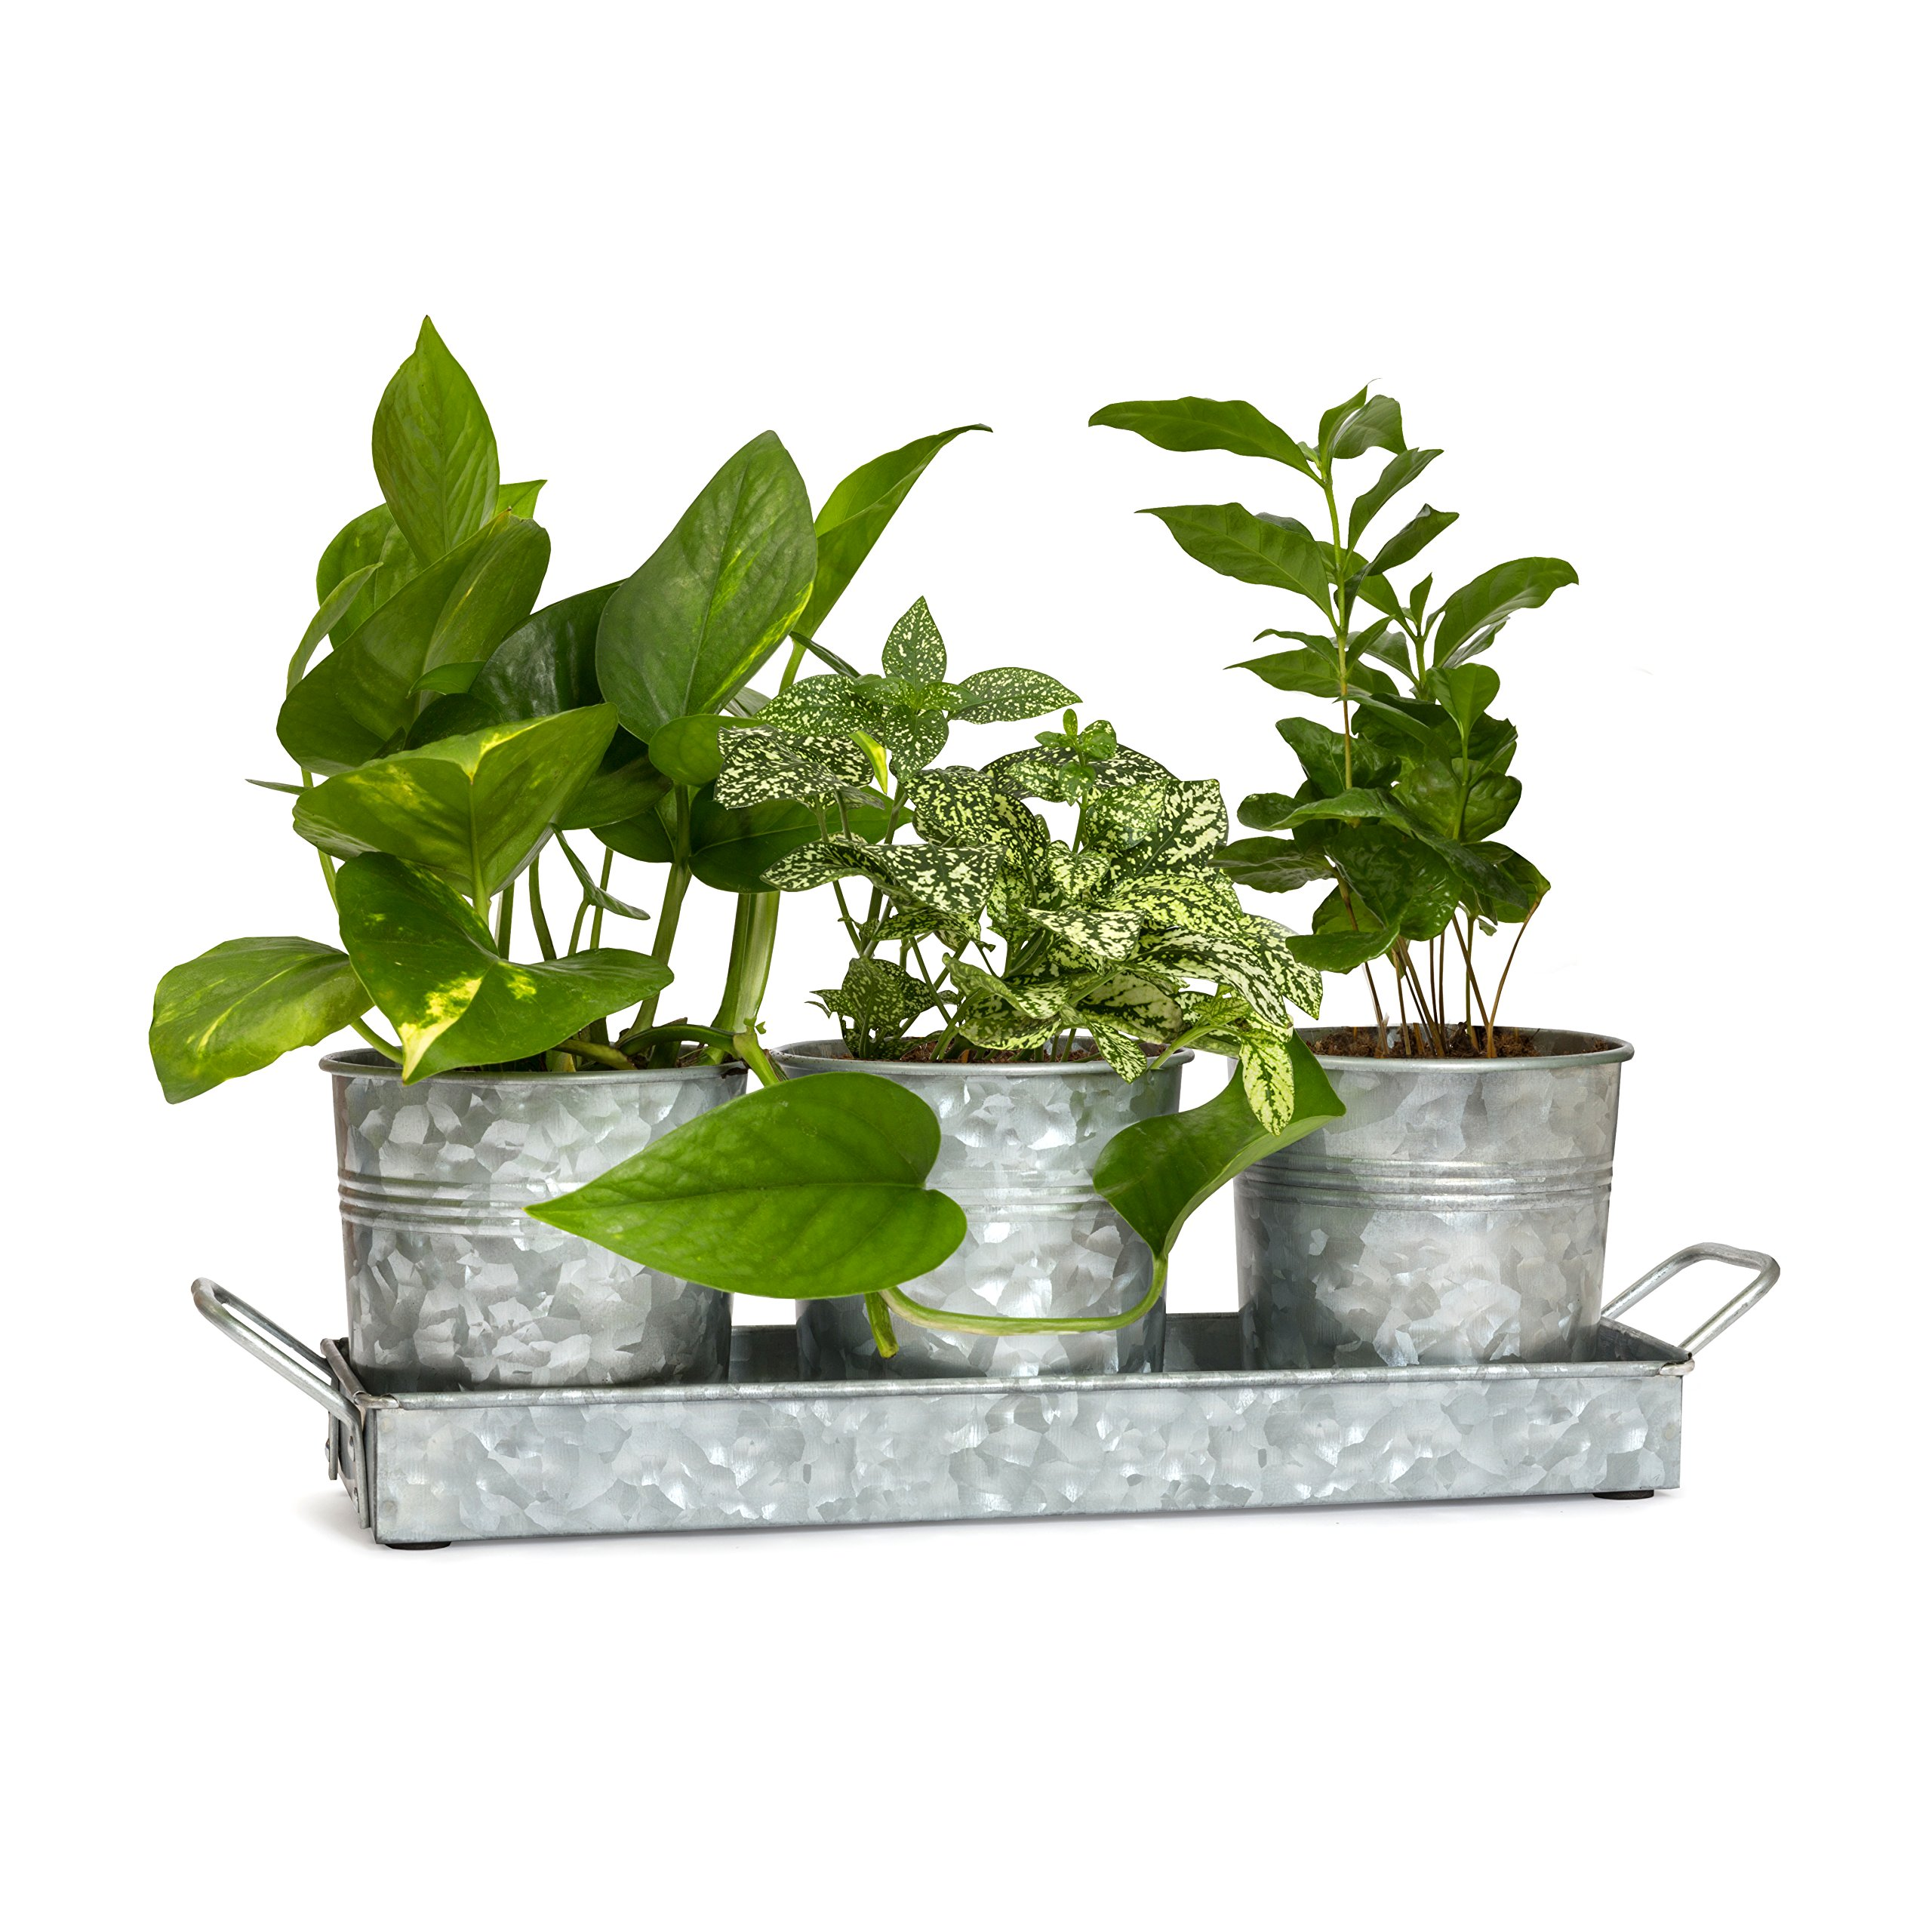 Farmhouse Flower Pot and Tray Set By Walford Home - Vintage Galvanized Windowsill Planter - Rustic Multi-use Caddy Indoor or Outdoor - Kitchen Craft Caddy Succulent Herb Planter by Walford Home